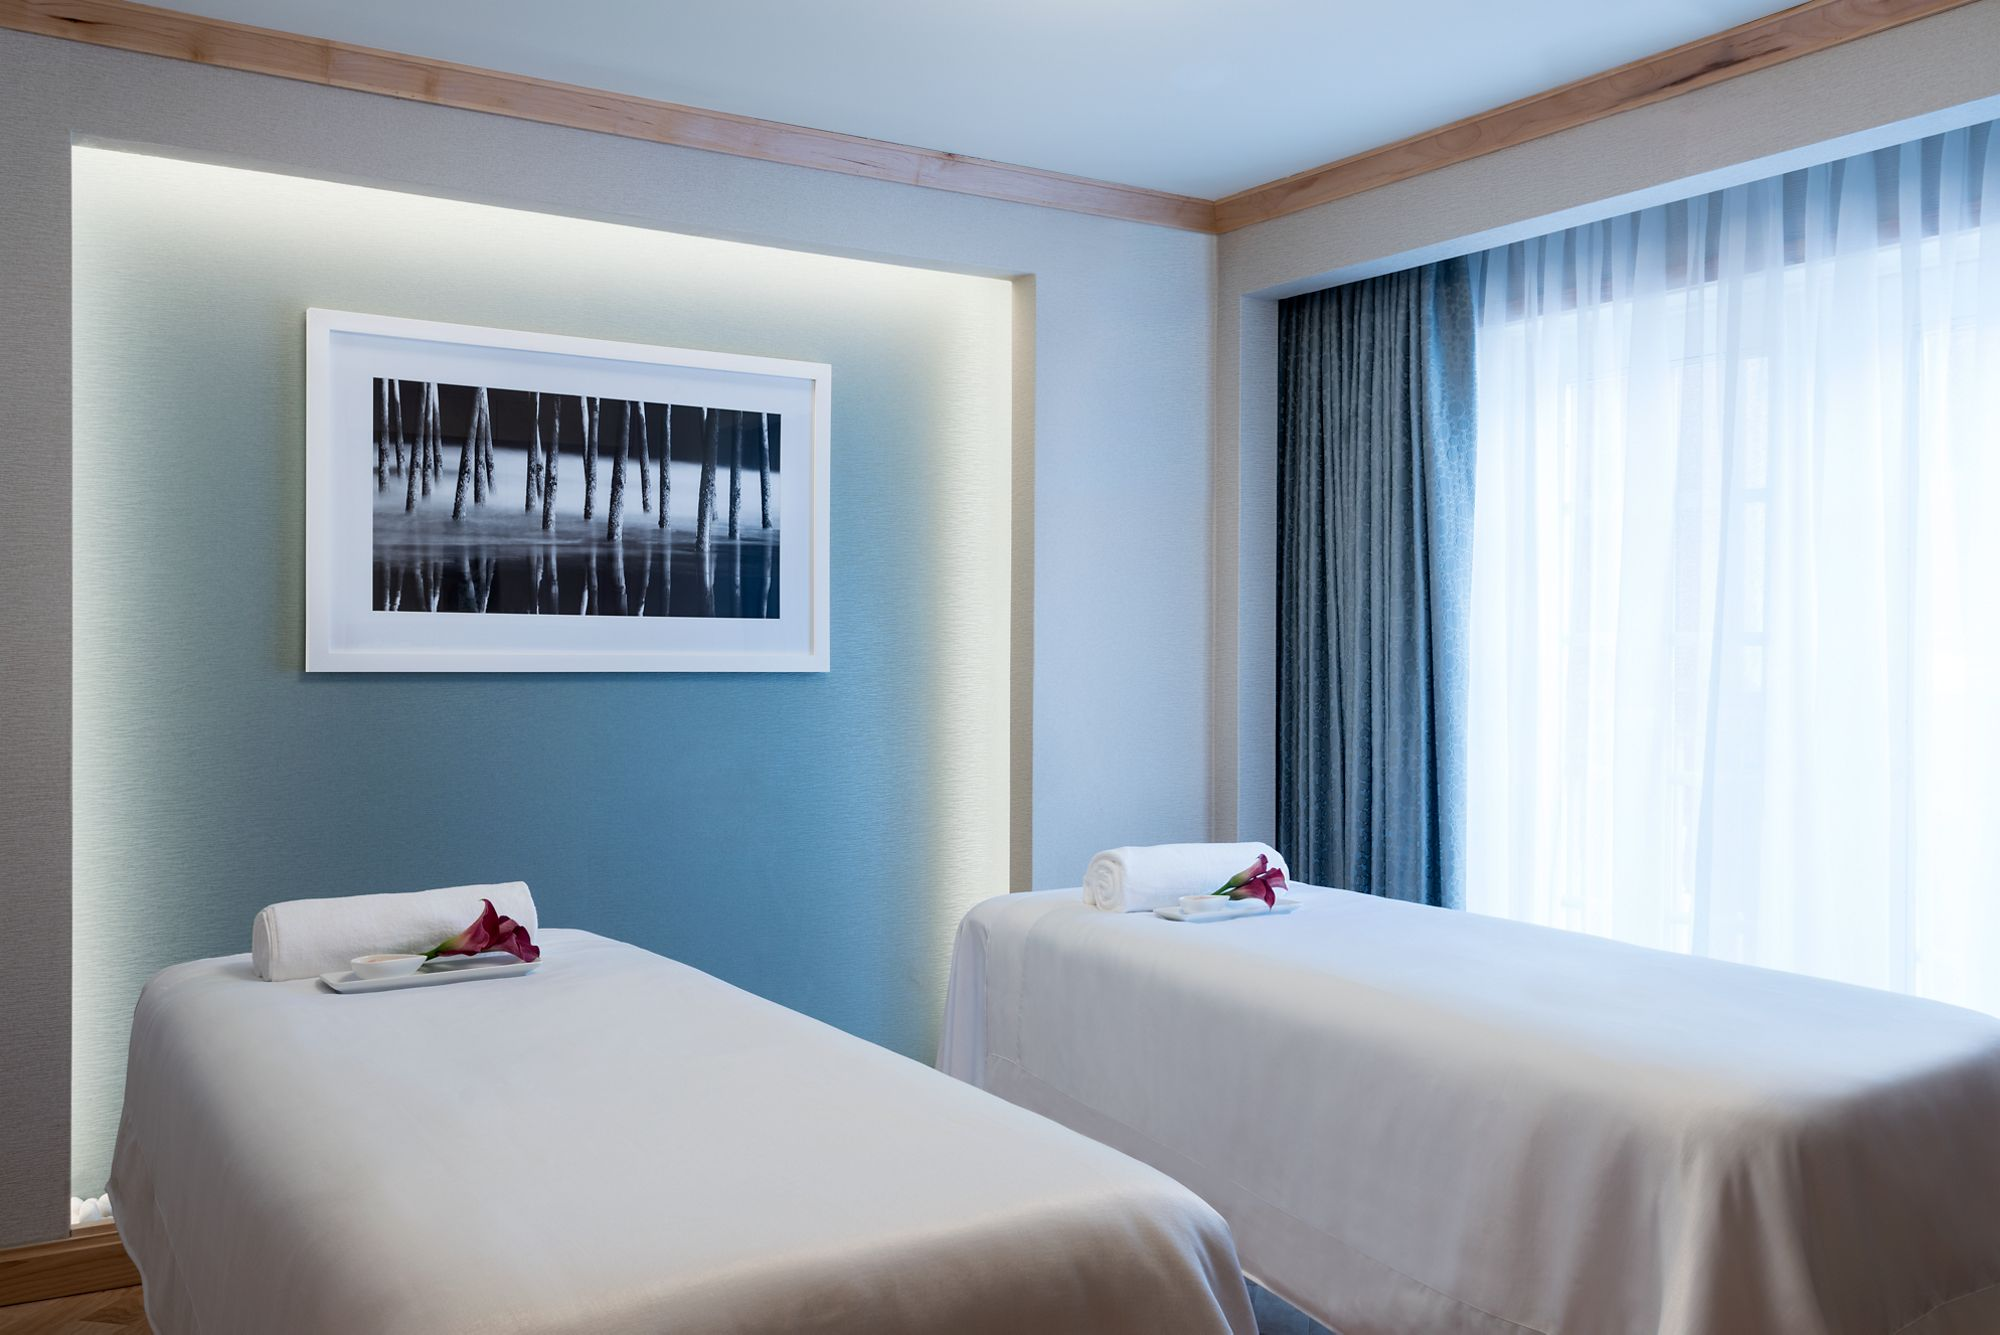 Two side-by-side massage tables in a room with a large window